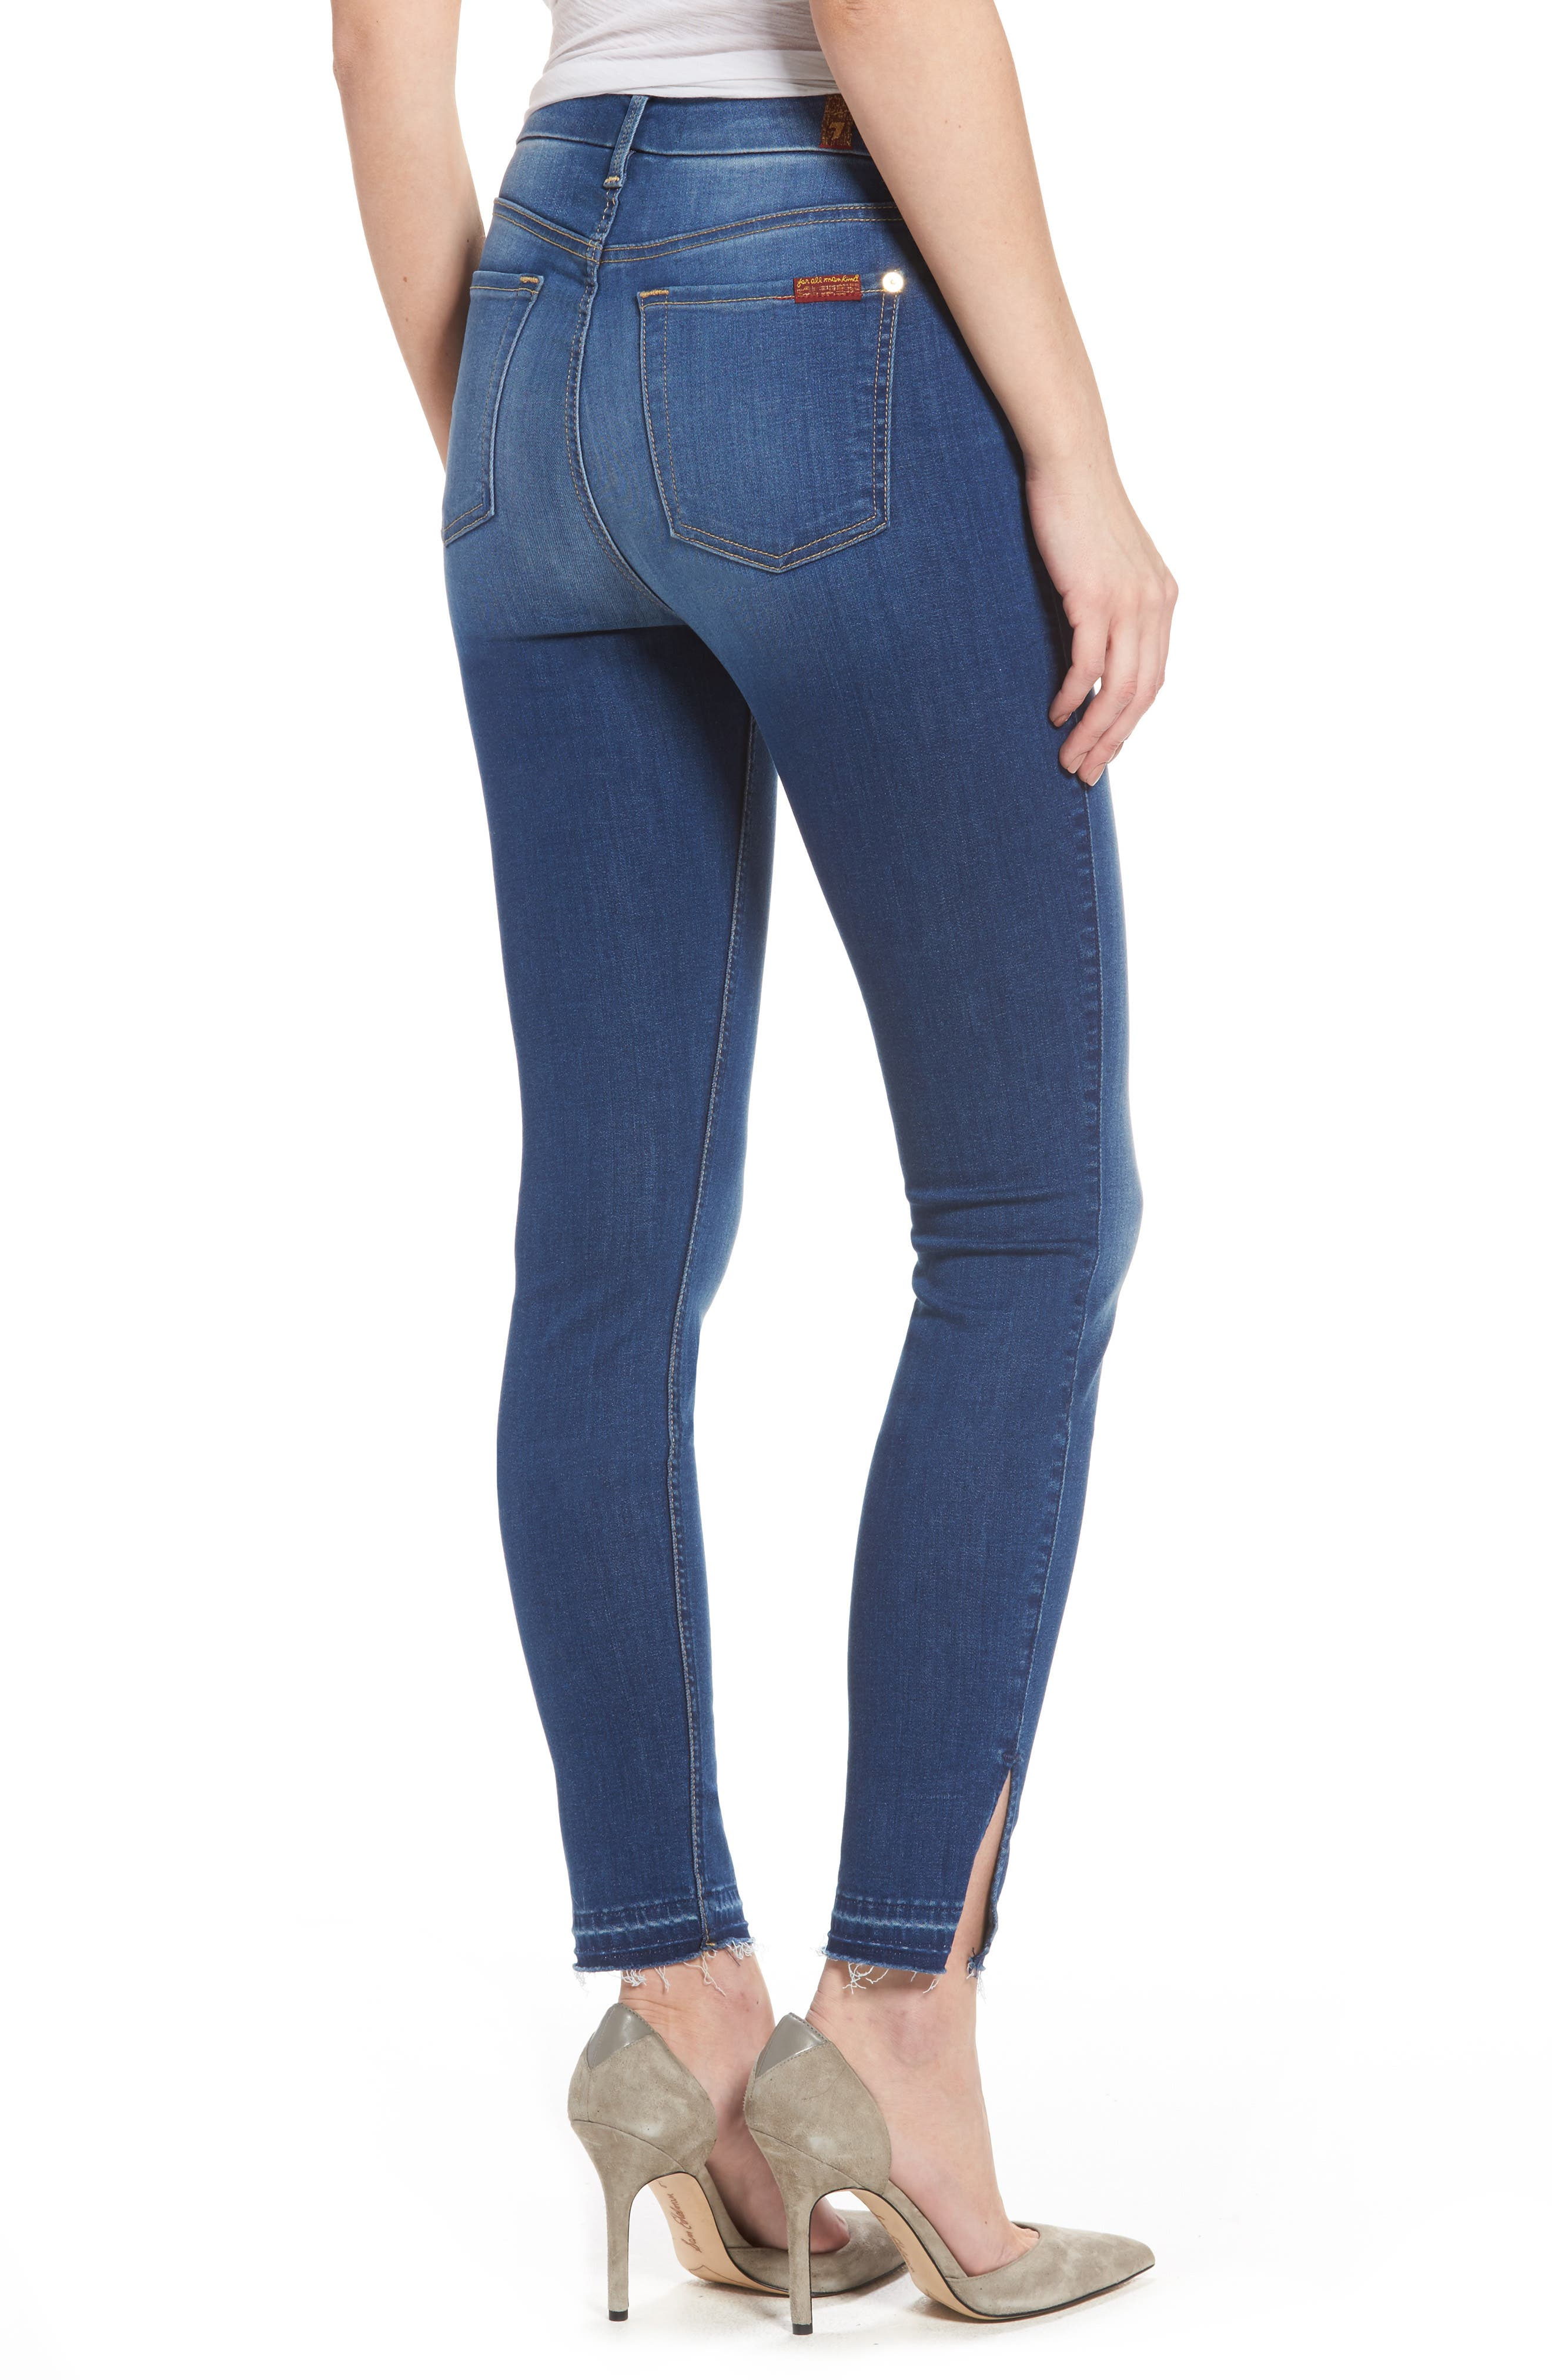 b(air) High Waist Split Hem Skinny Jeans,                             Alternate thumbnail 2, color,                             400